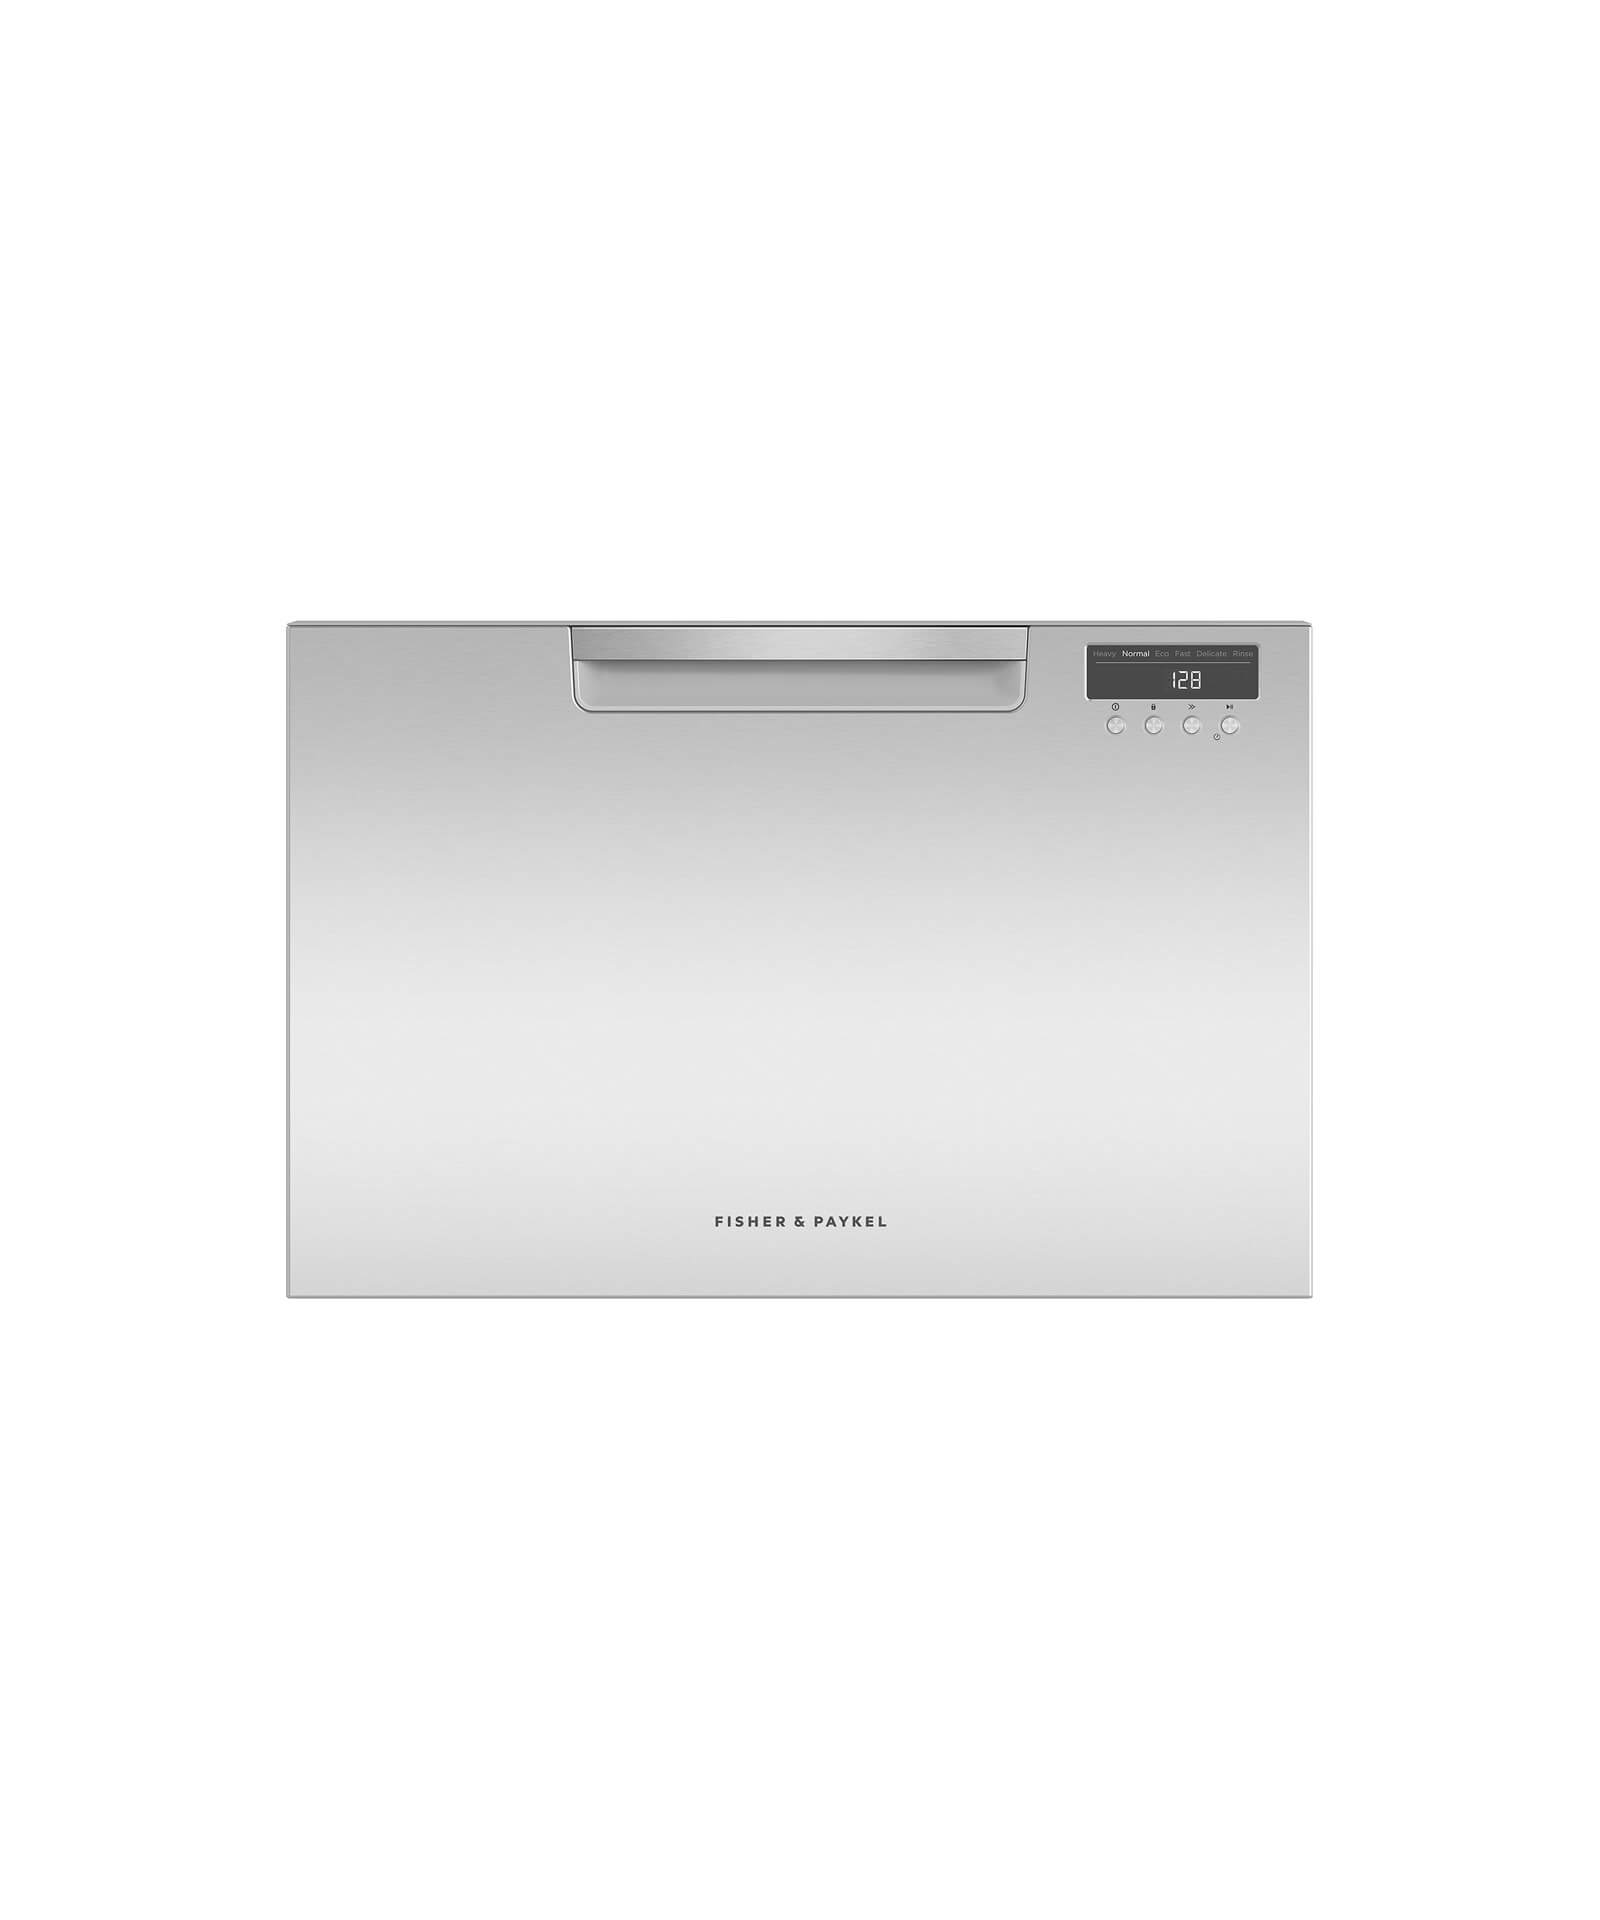 Single DishDrawer™ Dishwasher, 7 Place Settings